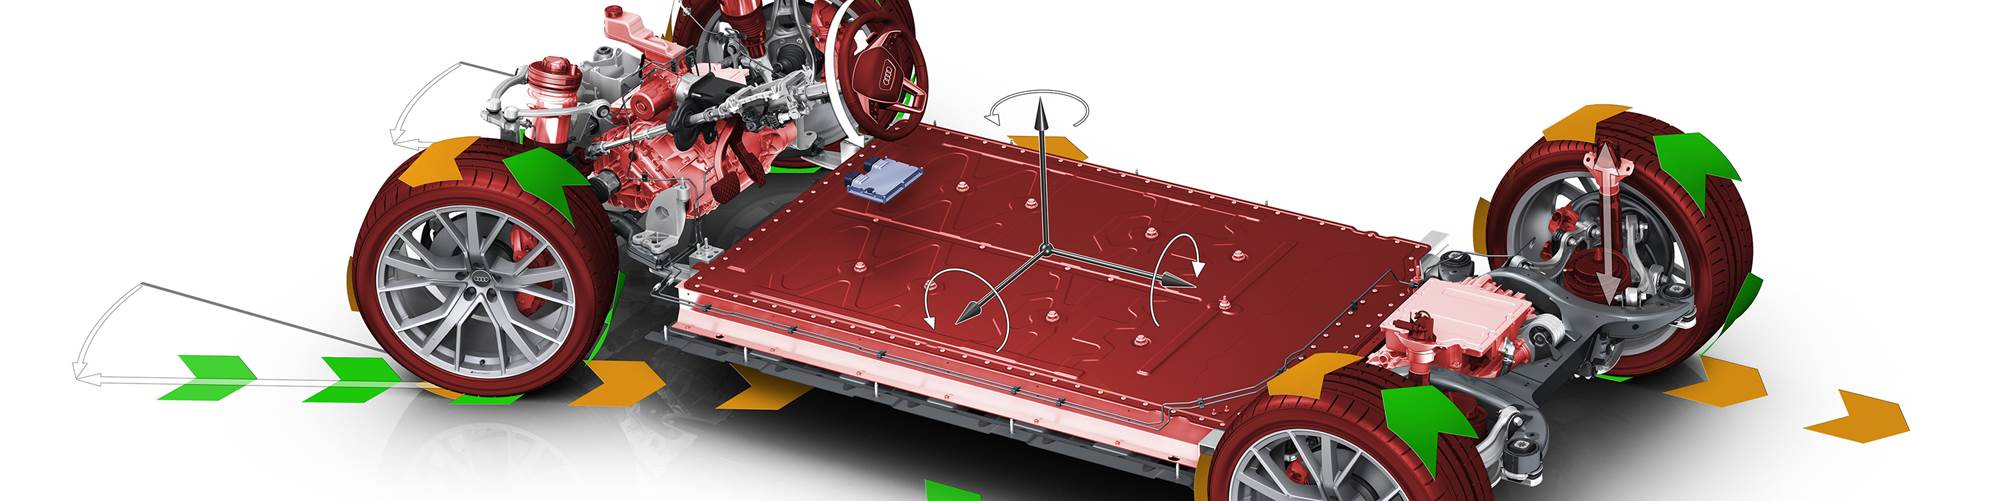 Audi integrated vehicle dynamics controller combines powertrain and chassis functions